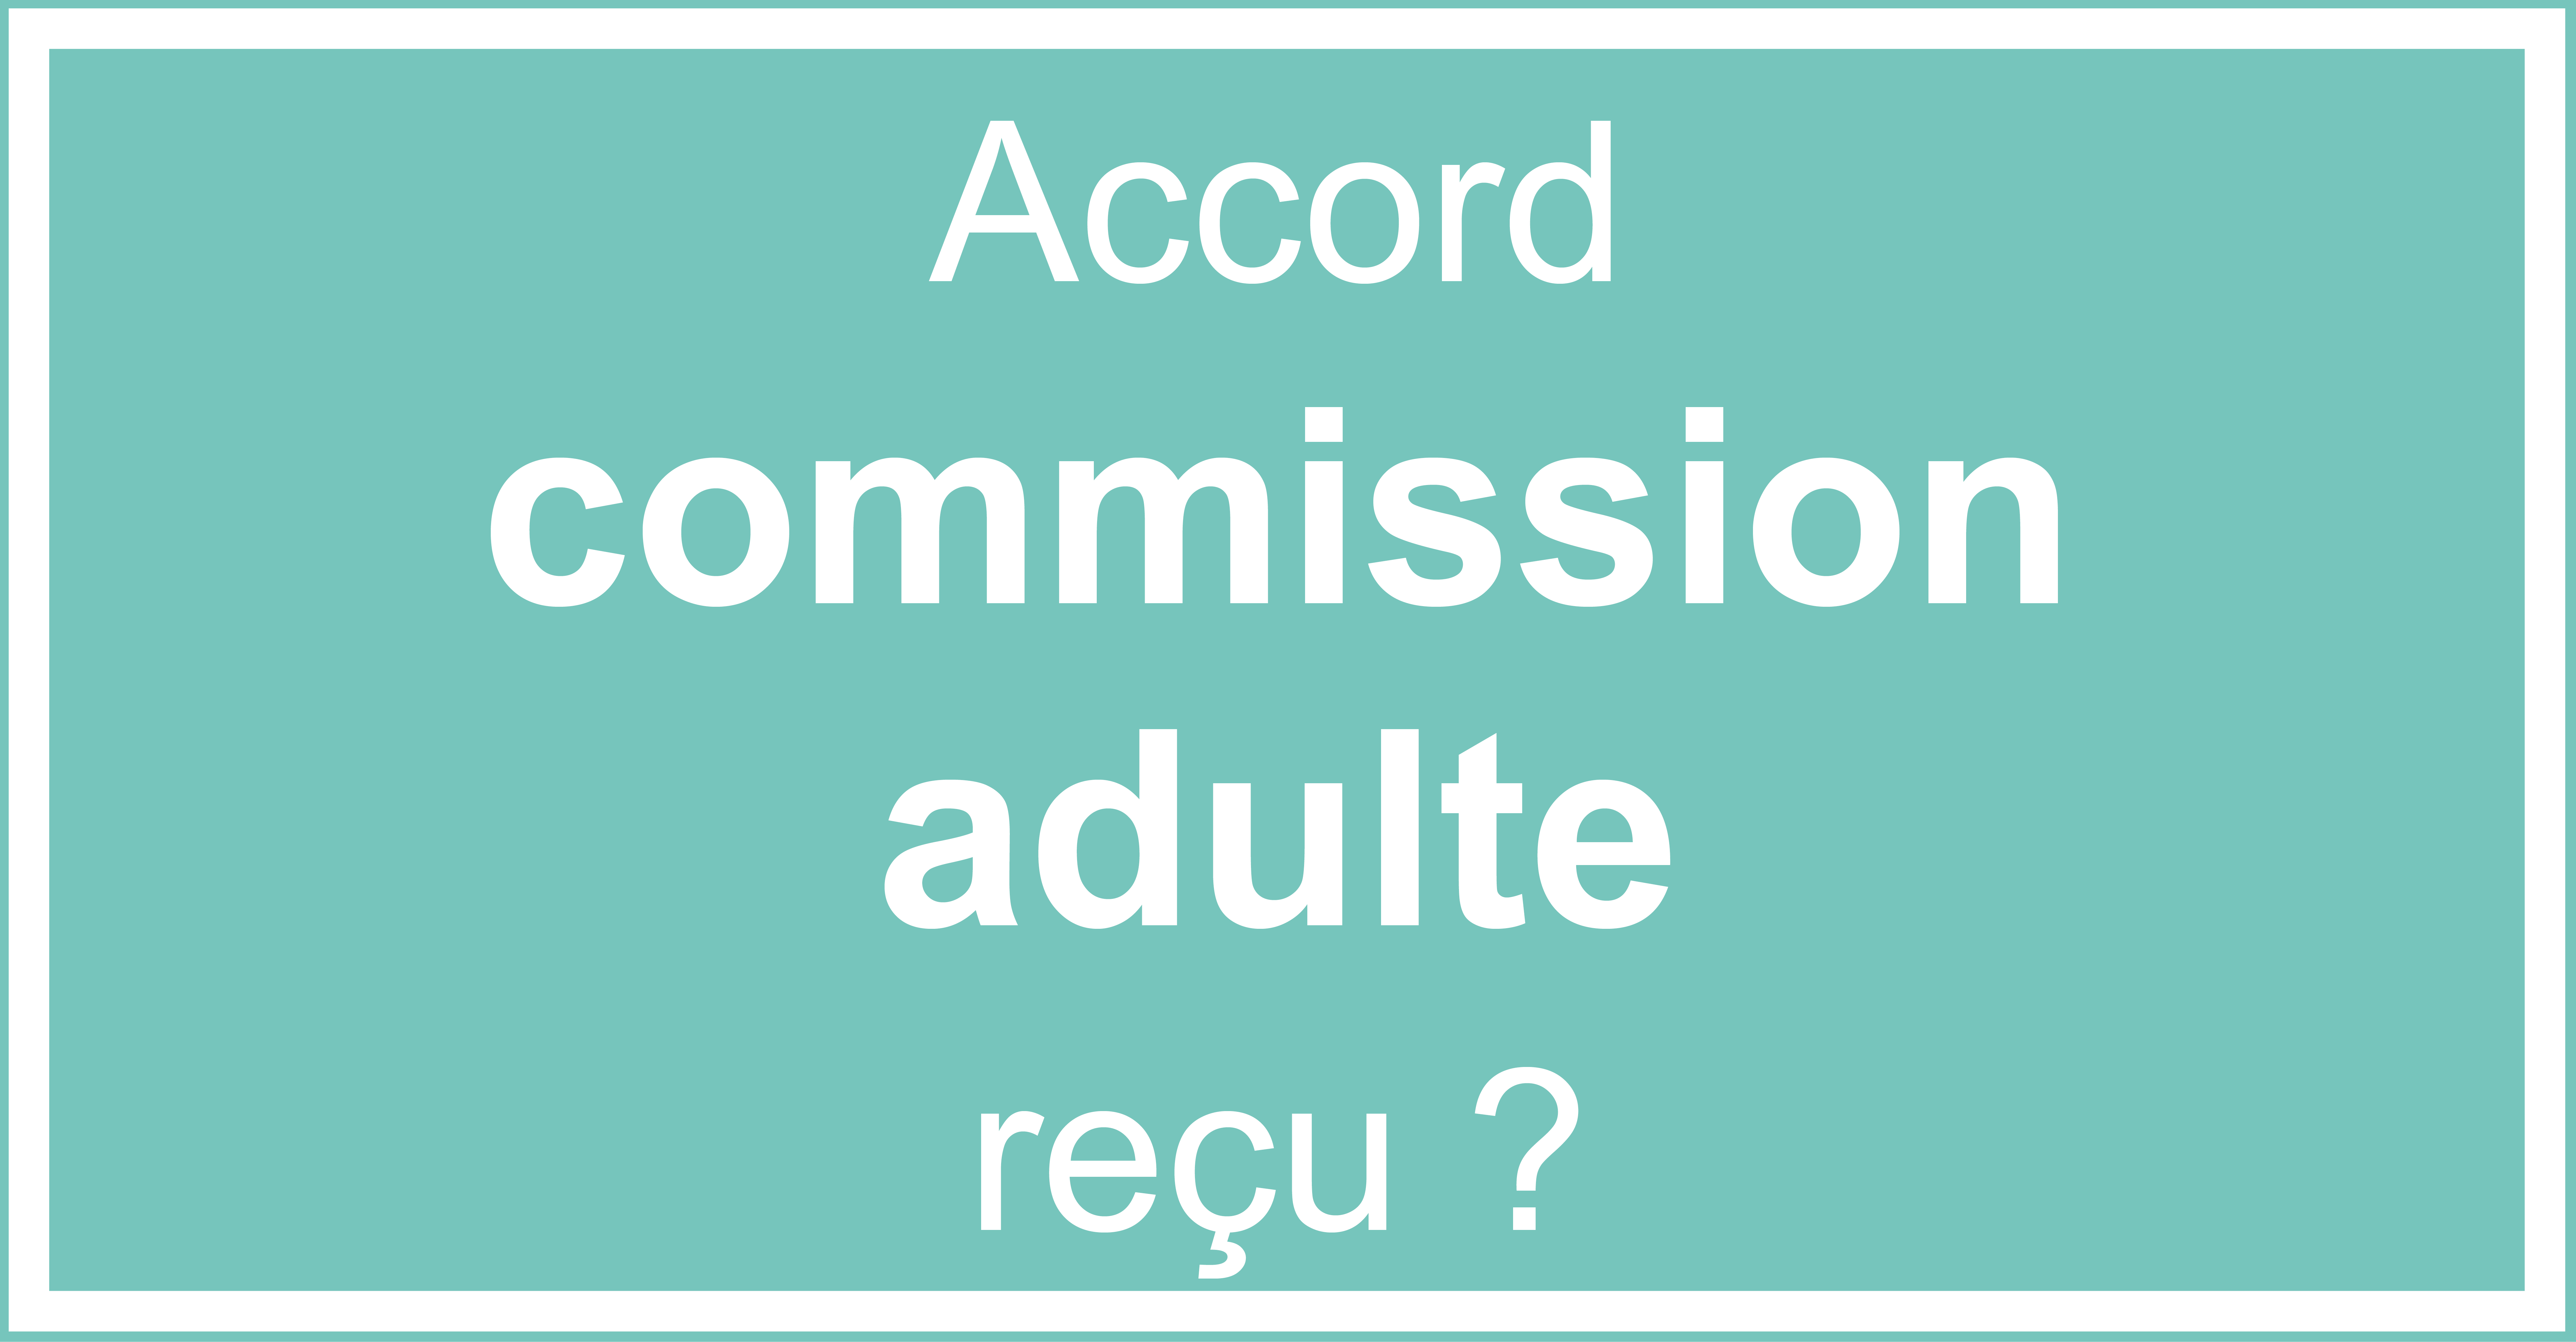 Accord commission adulte reçu?